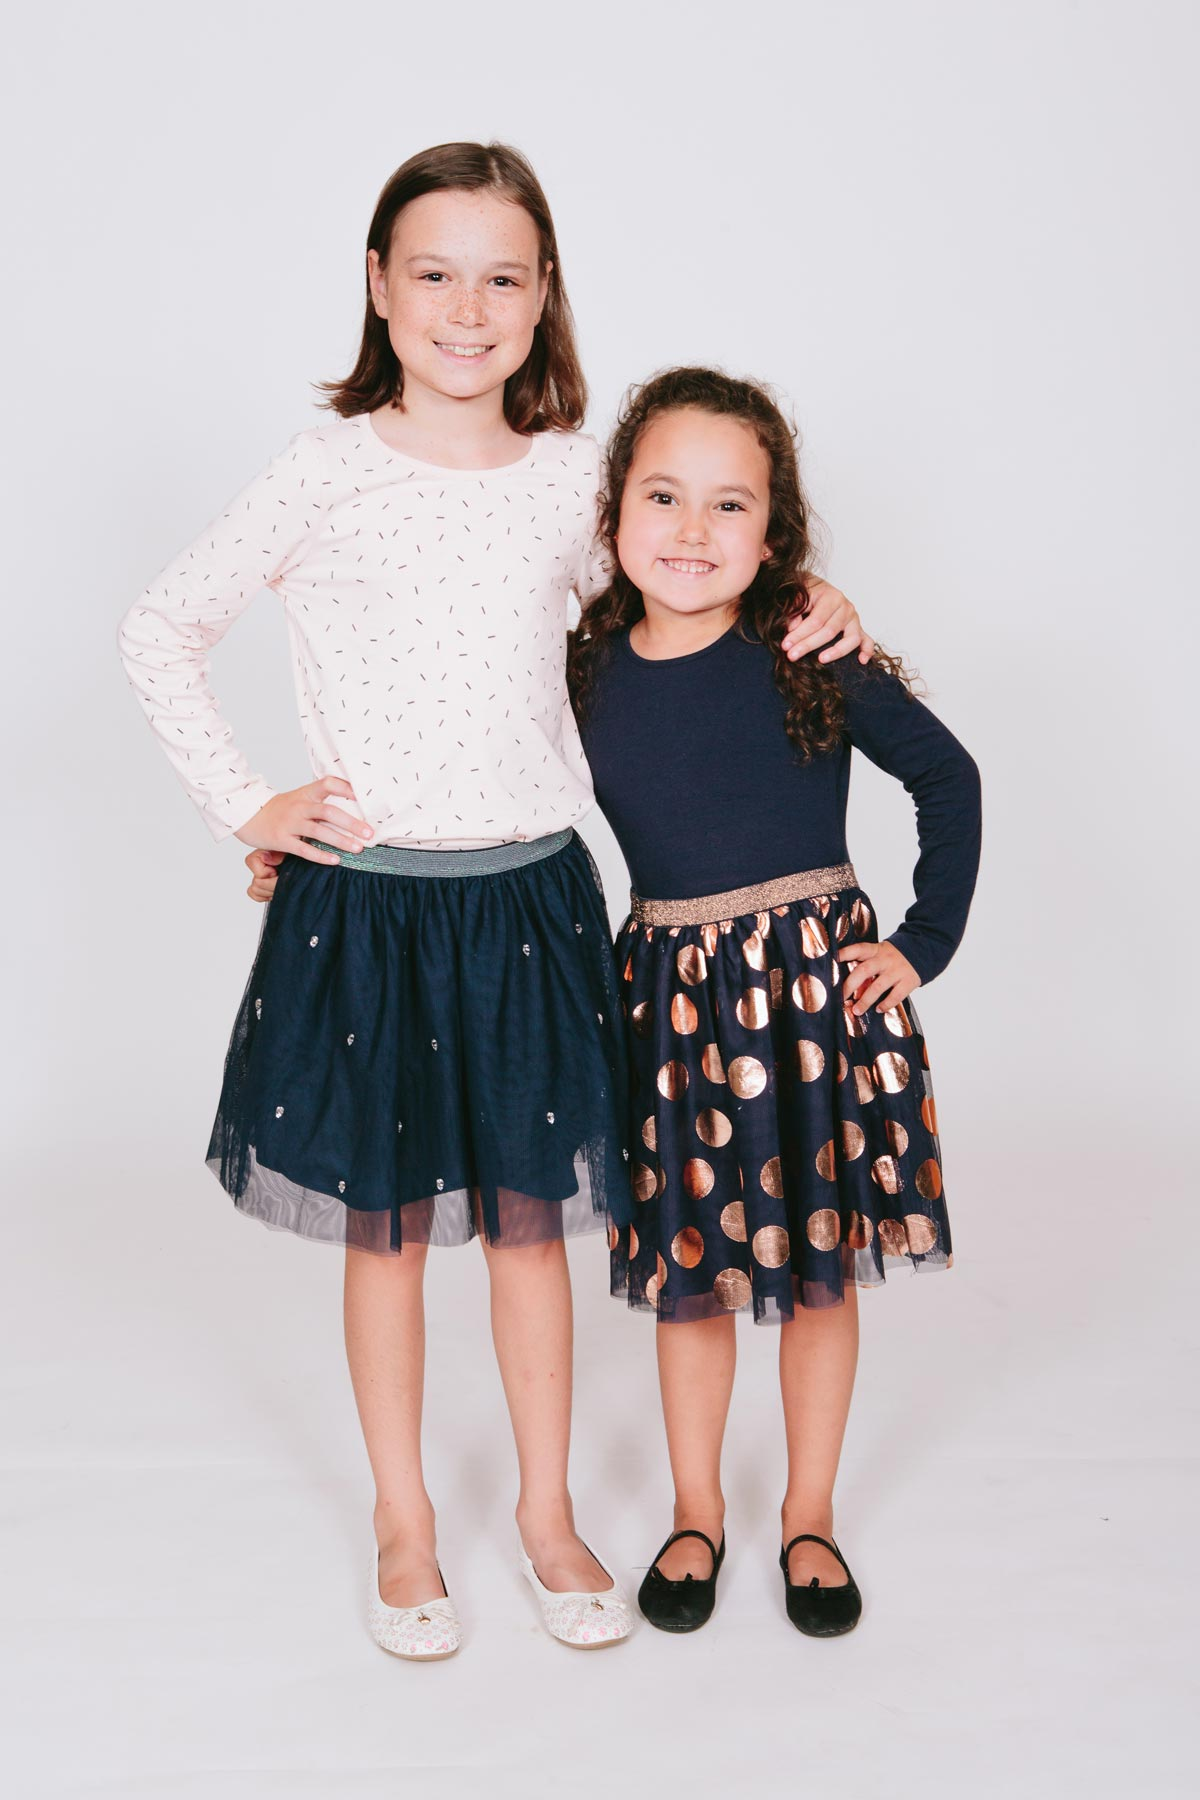 studio photography of sibling children portrait during family photoshoot in west harbour auckland by sarah weber photography